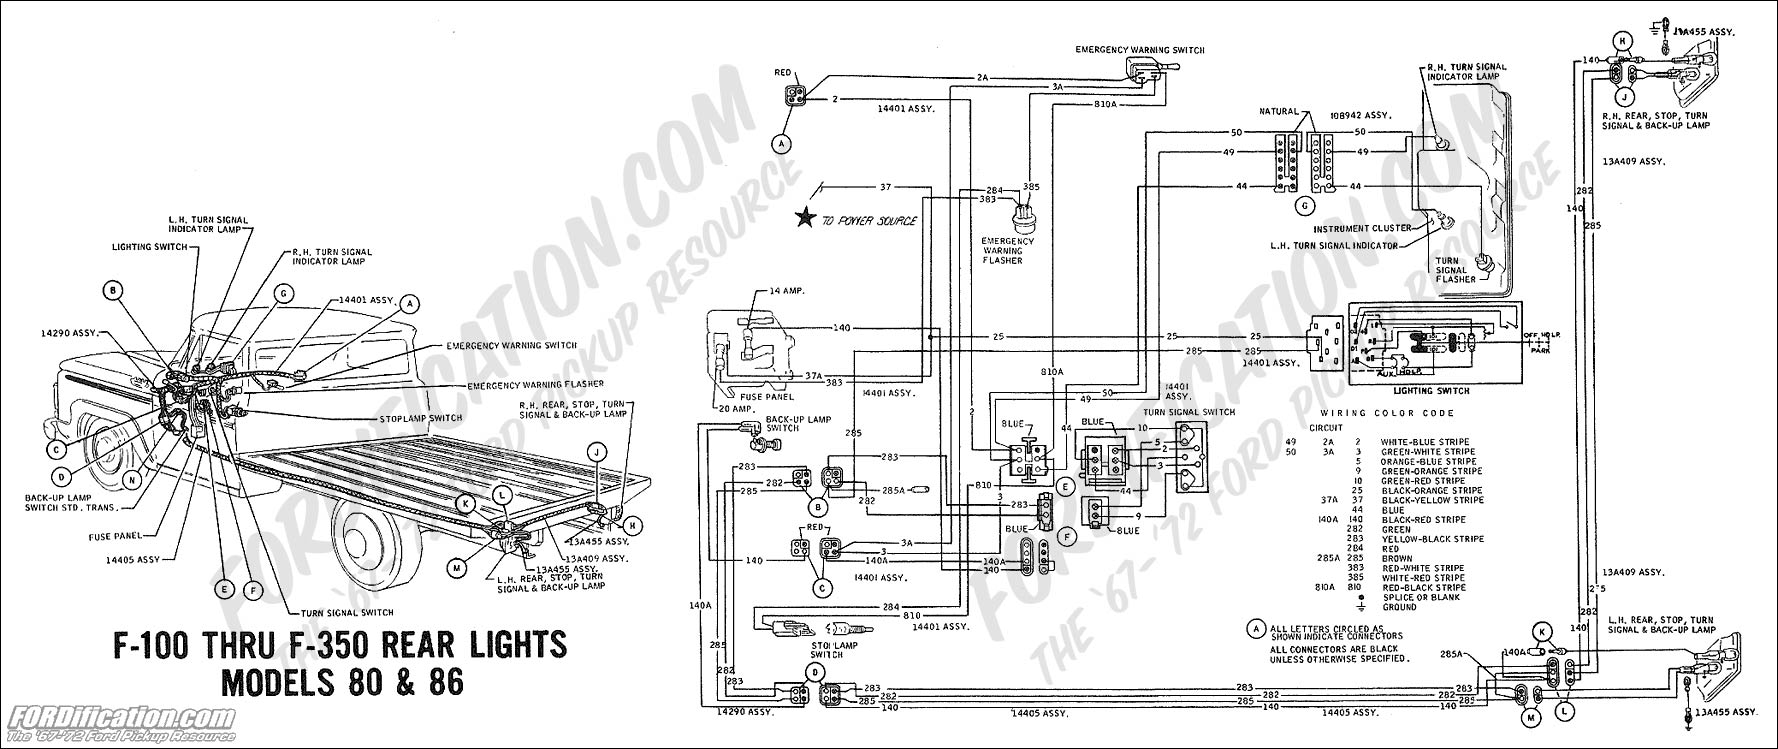 1986 Ford F150 Alternator Wiring Diagram from static-resources.imageservice.cloud